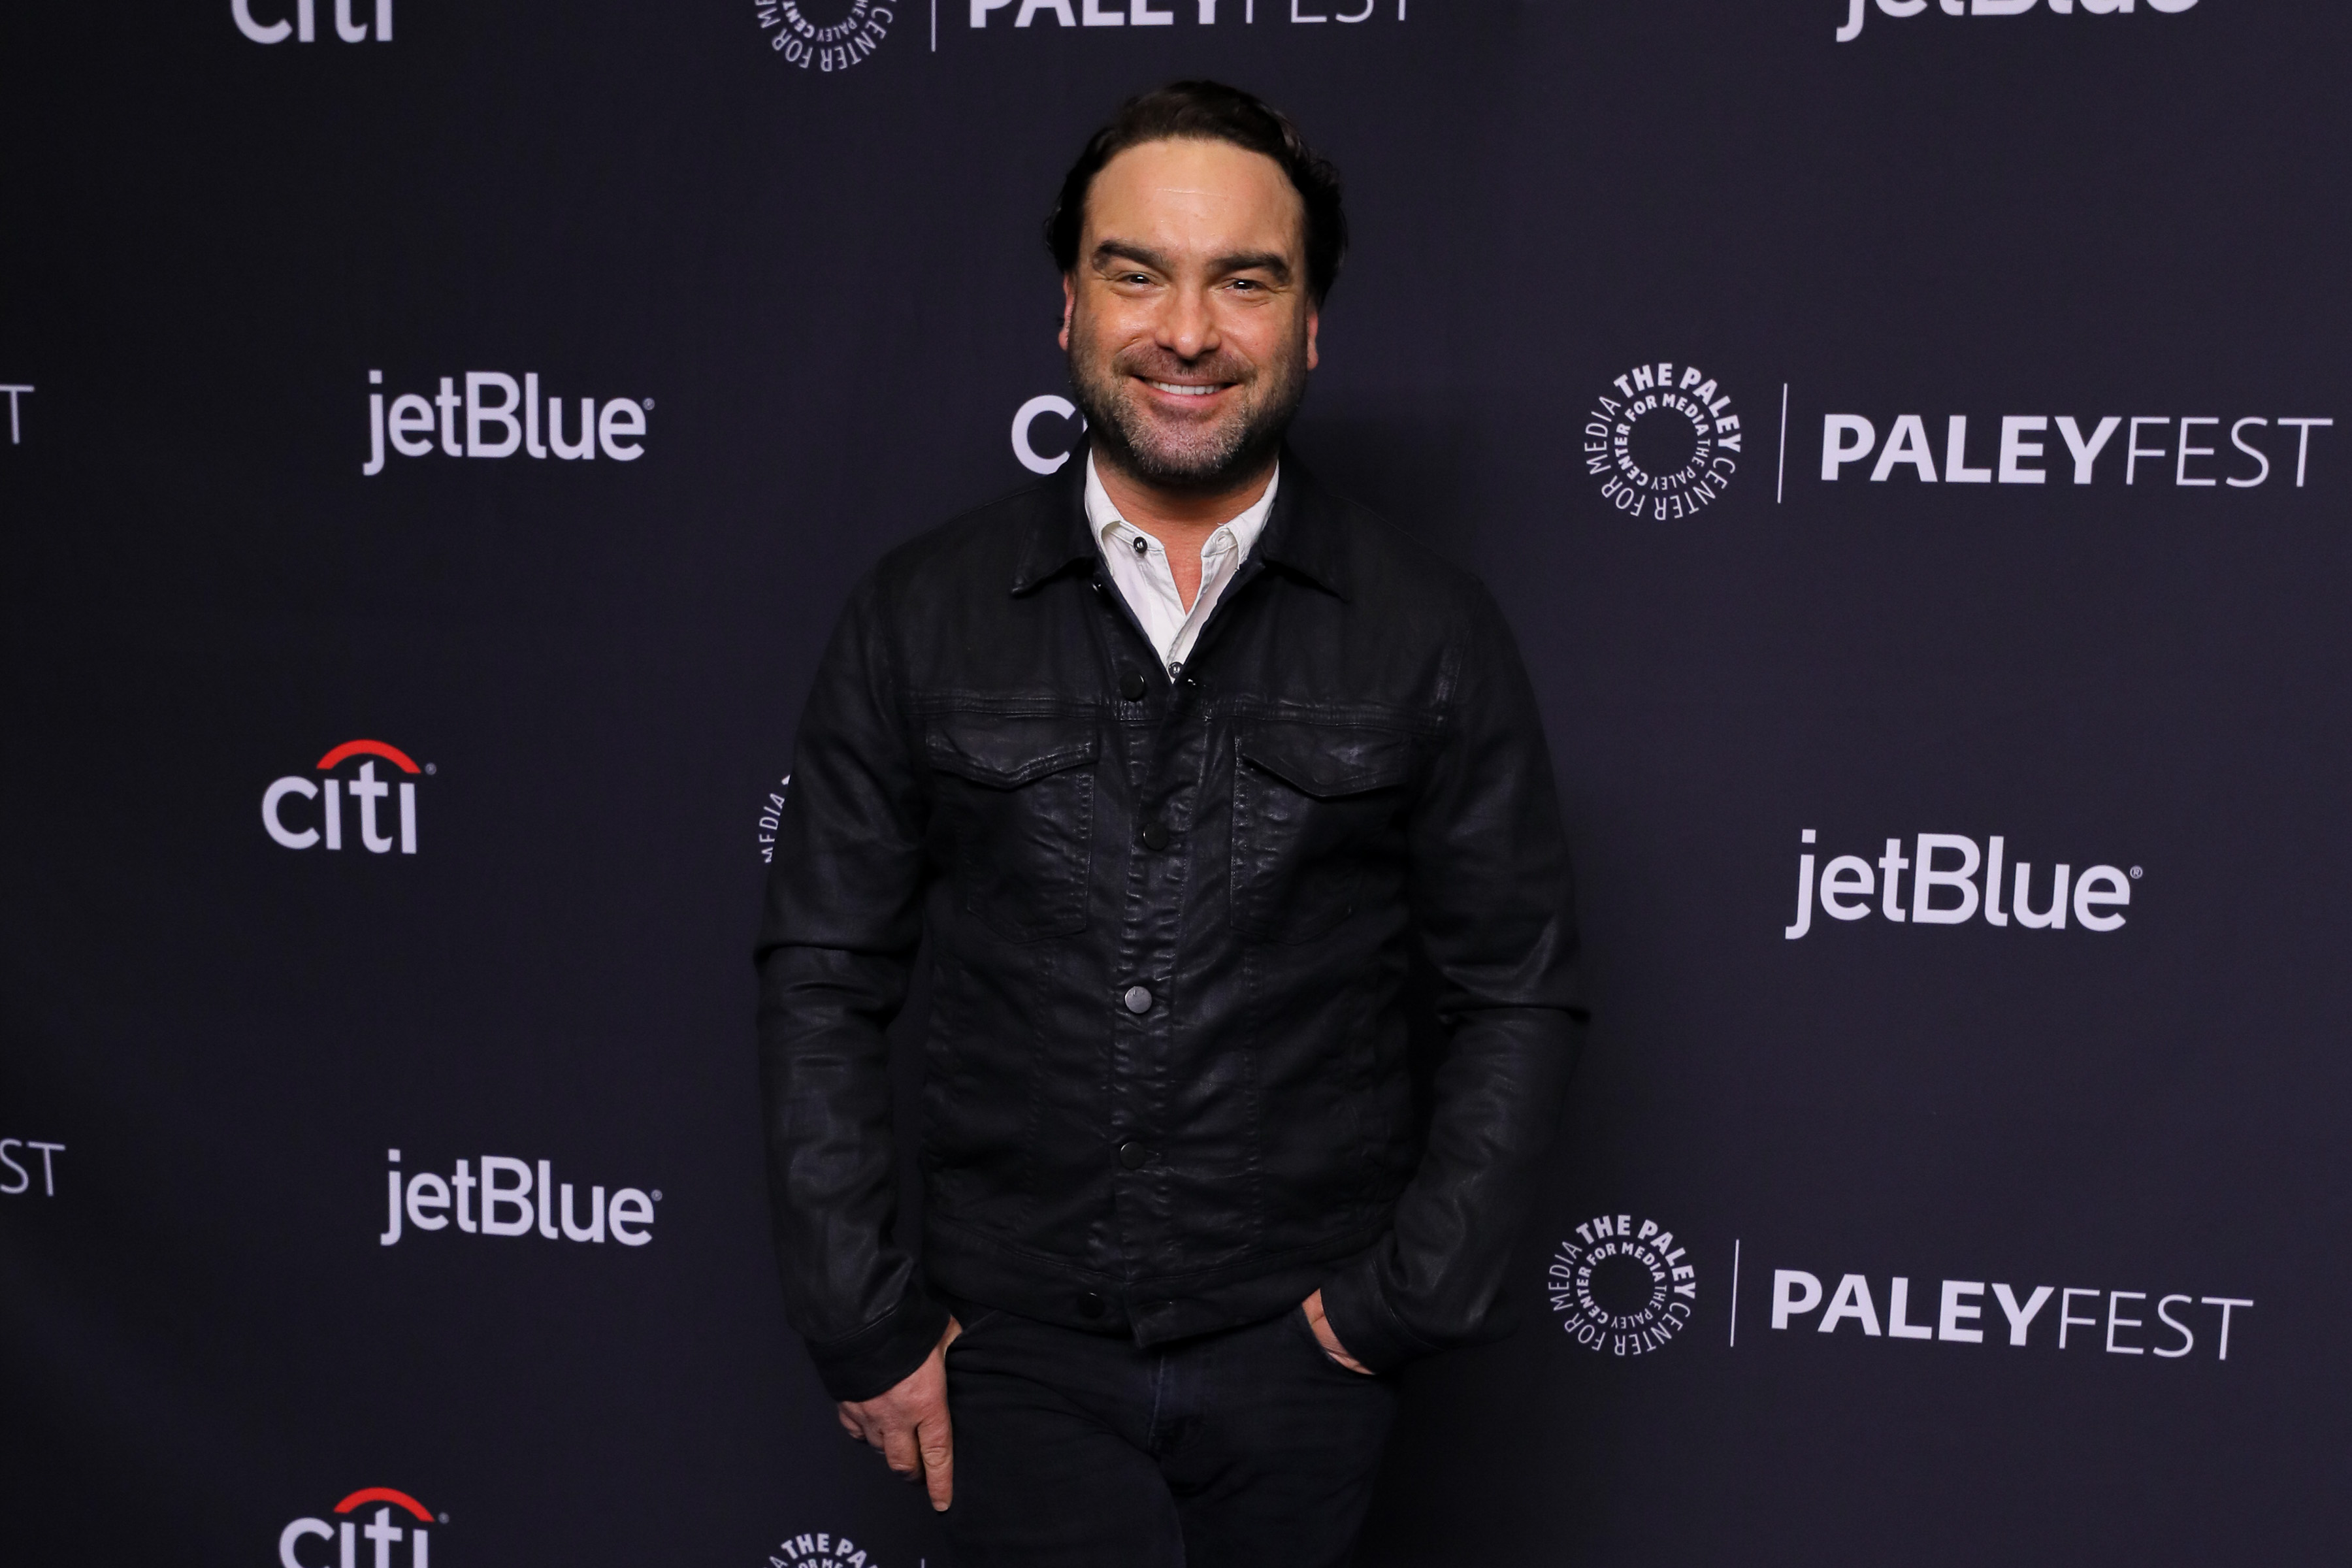 """HOLLYWOOD, CA - MARCH 21:  Johnny Galecki attends PaleyFest Los Angeles 2018 - """"The Big Bang Theory"""" and """"Young Sheldon"""" at Dolby Theatre on March 21, 2018 in Hollywood, California.  (Photo by Presley Ann/Patrick McMullan via Getty Images)"""